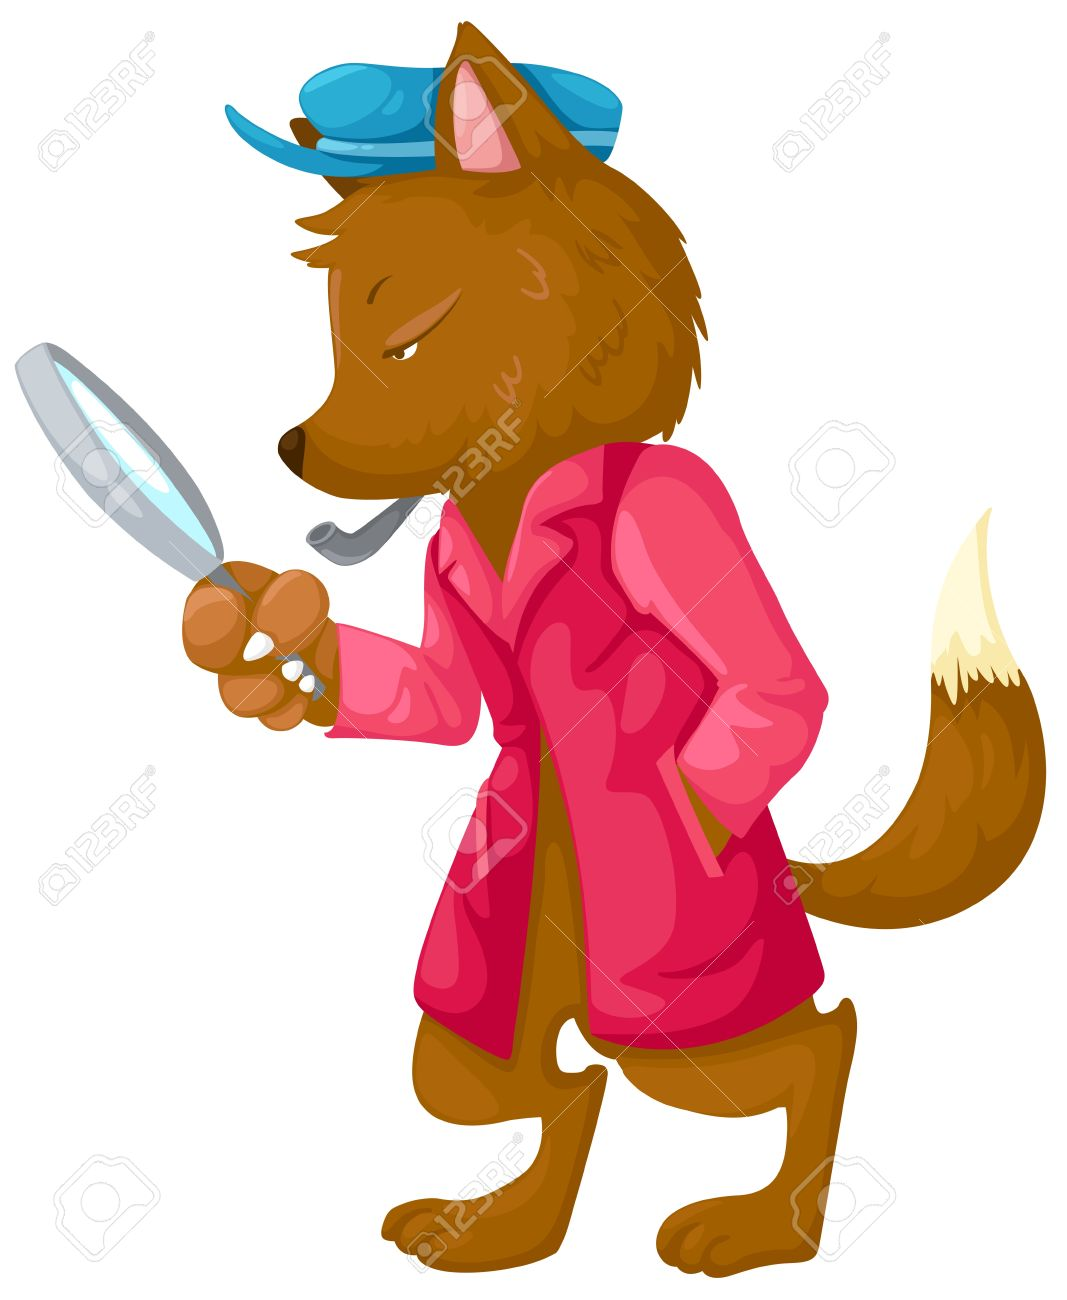 Detective Dog Stock Photos Images. Royalty Free Detective Dog.